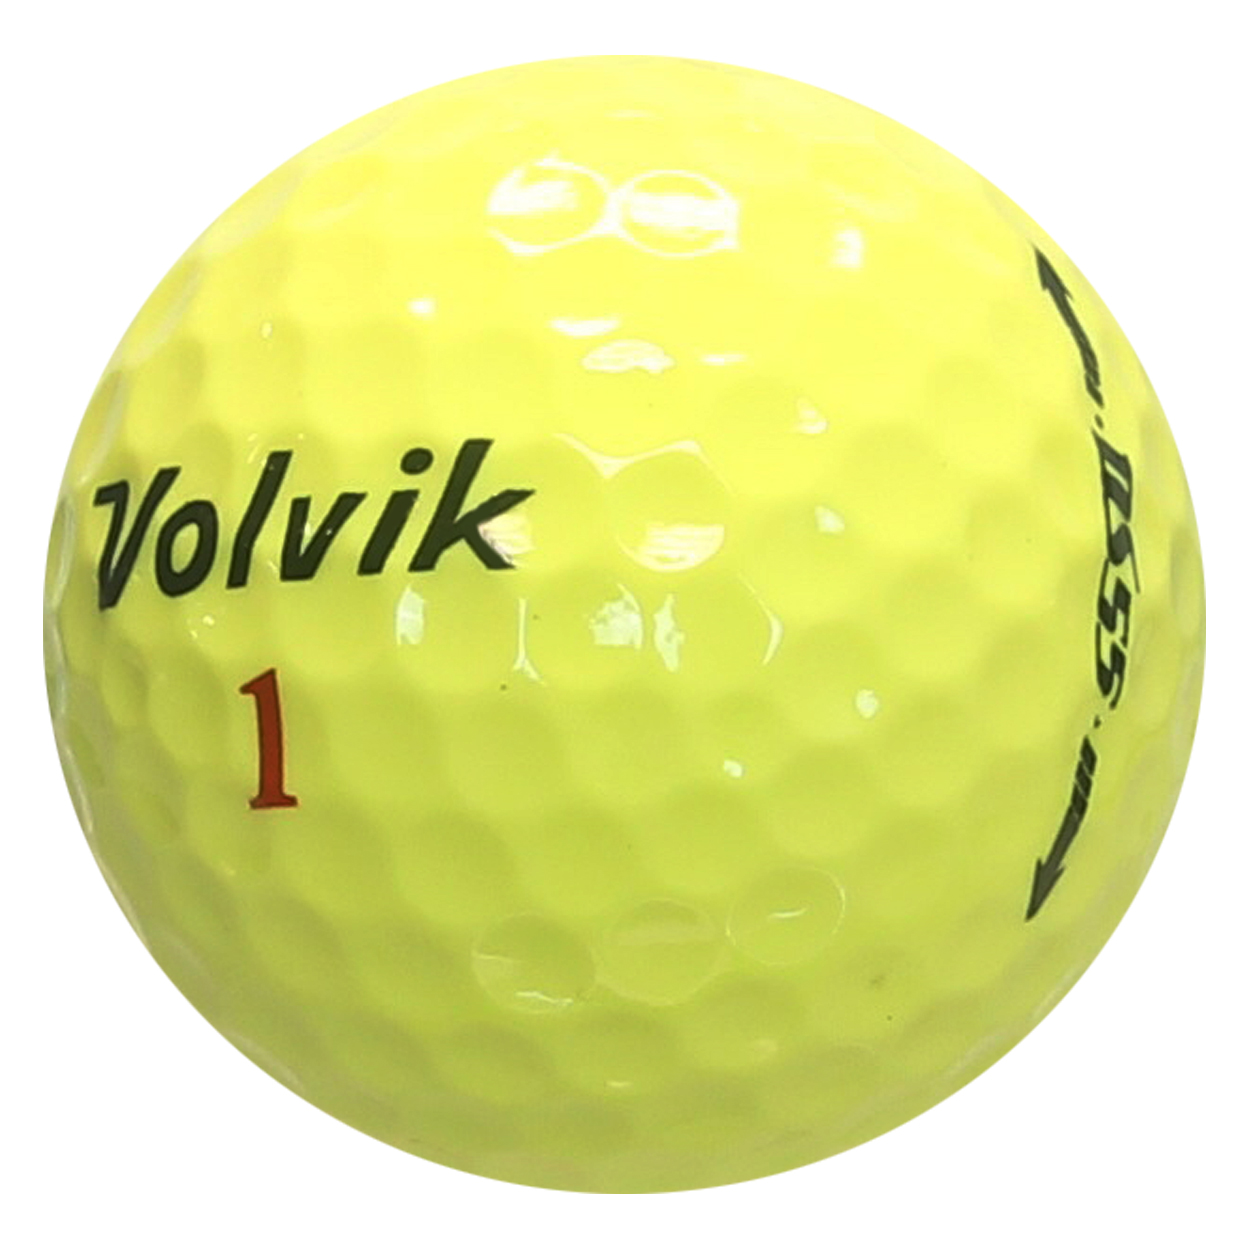 The Volvik DS (Dual Spin) 55 Golf Ball features: Dual Spin 55-Compression ideal for average swing speeds.(60-90 MPH)Maximum distance provided by new highly elastic power core. Low initial driver spin creates extremely accurate flight stability. High wedge spin provides tour pro like spin around the greens. Available in many colors and are USGA/R & A conforming. QTY: 12 (1 Dozen)